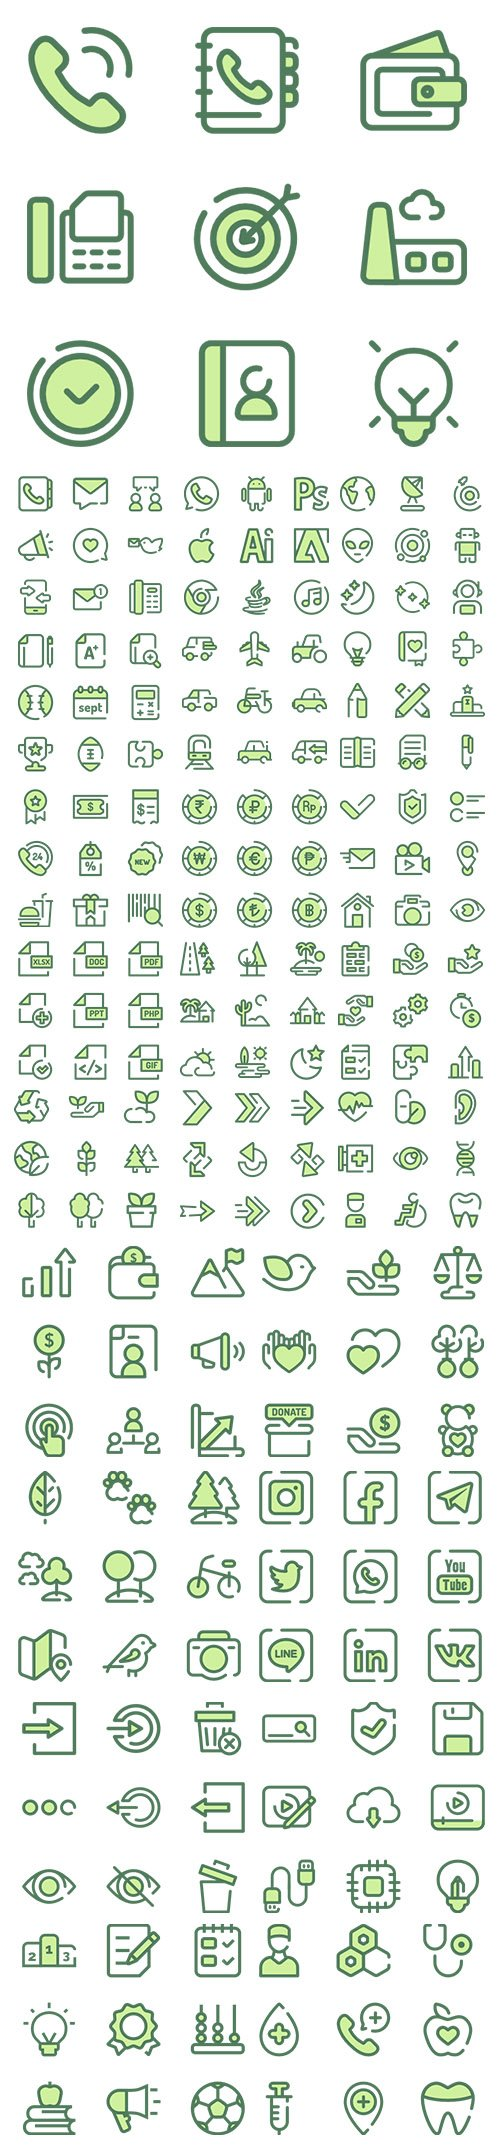 1200+ Monochrome Green Vector Icons Set